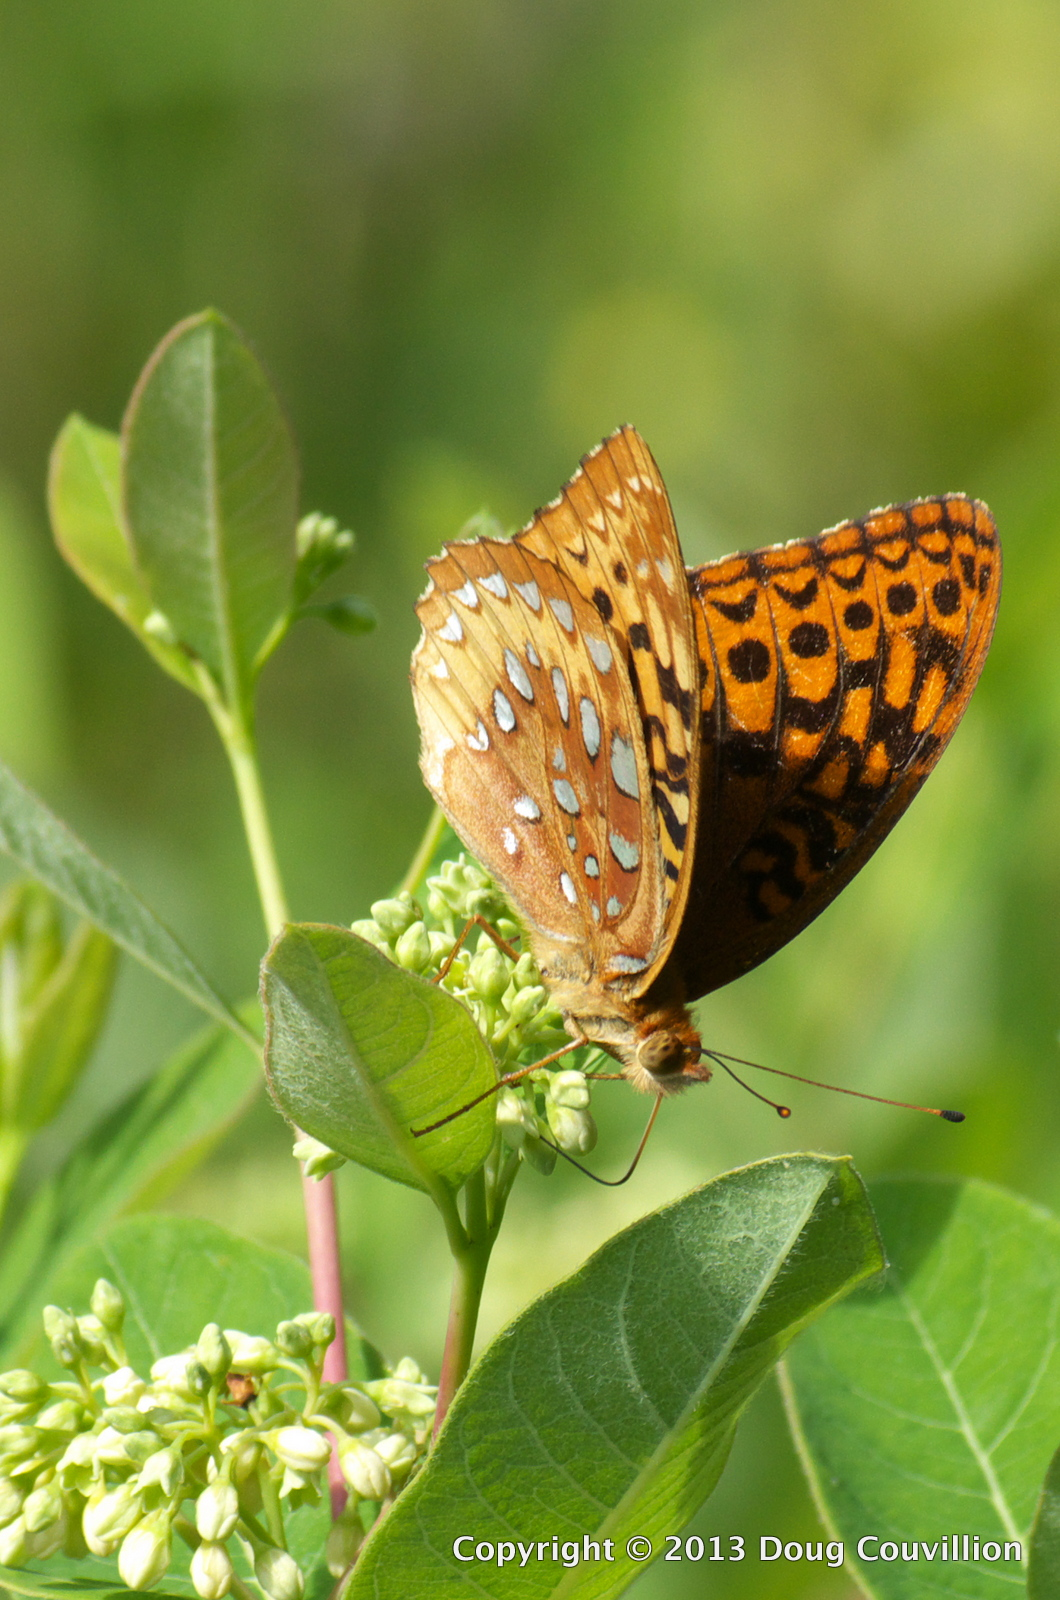 photograph of a Great Spangled Fritillary butterfly feeding on nectar